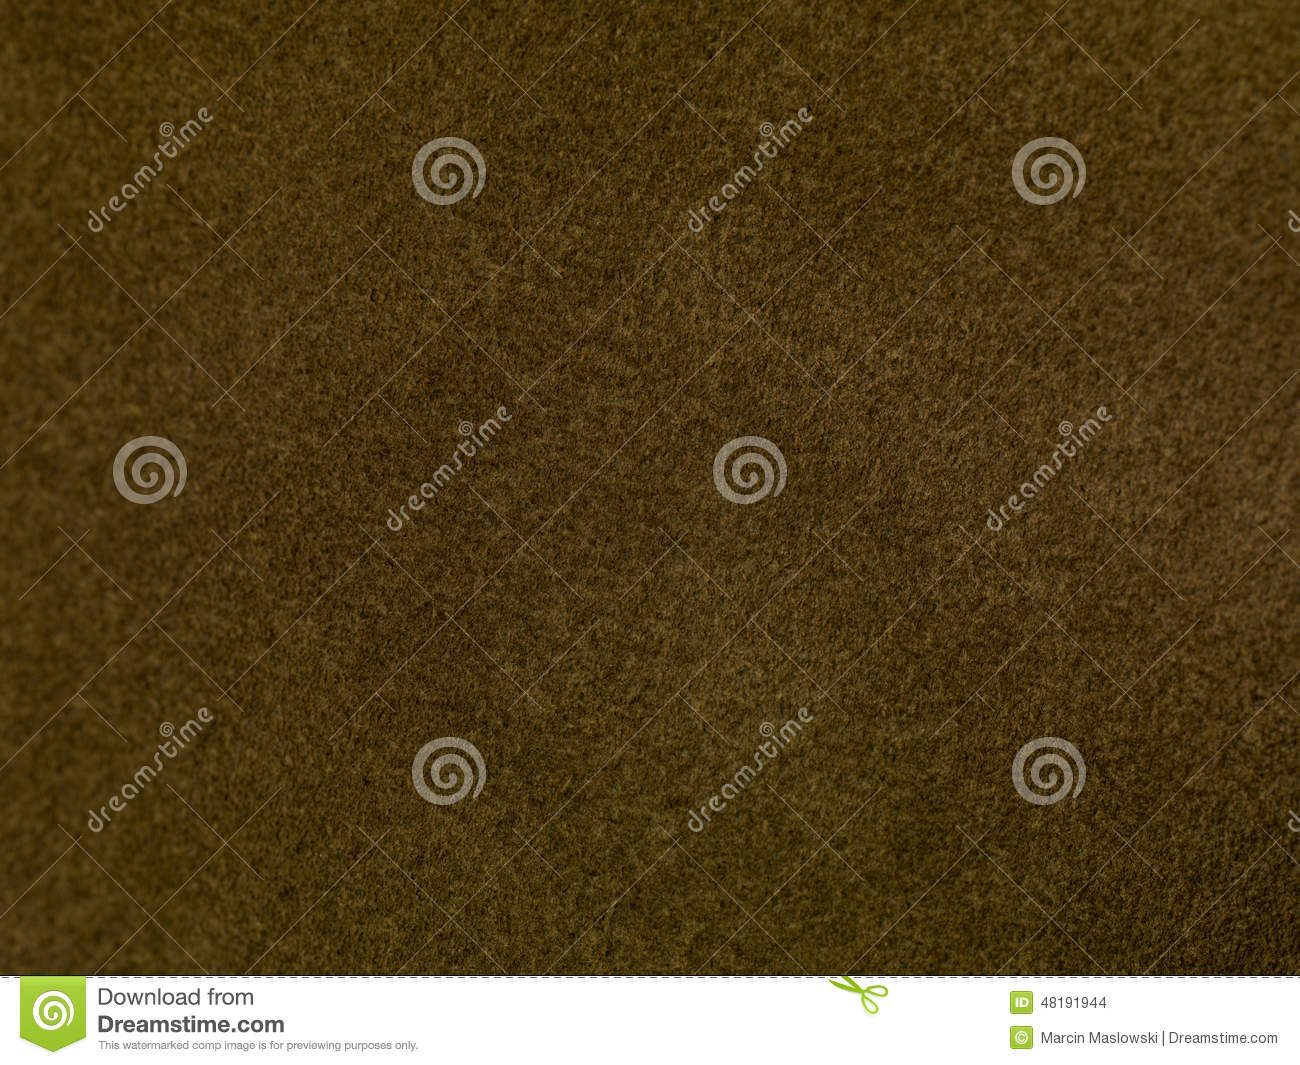 E Download Dark Green Carpet Stock Photo Image Of Decorative Curled   48191944